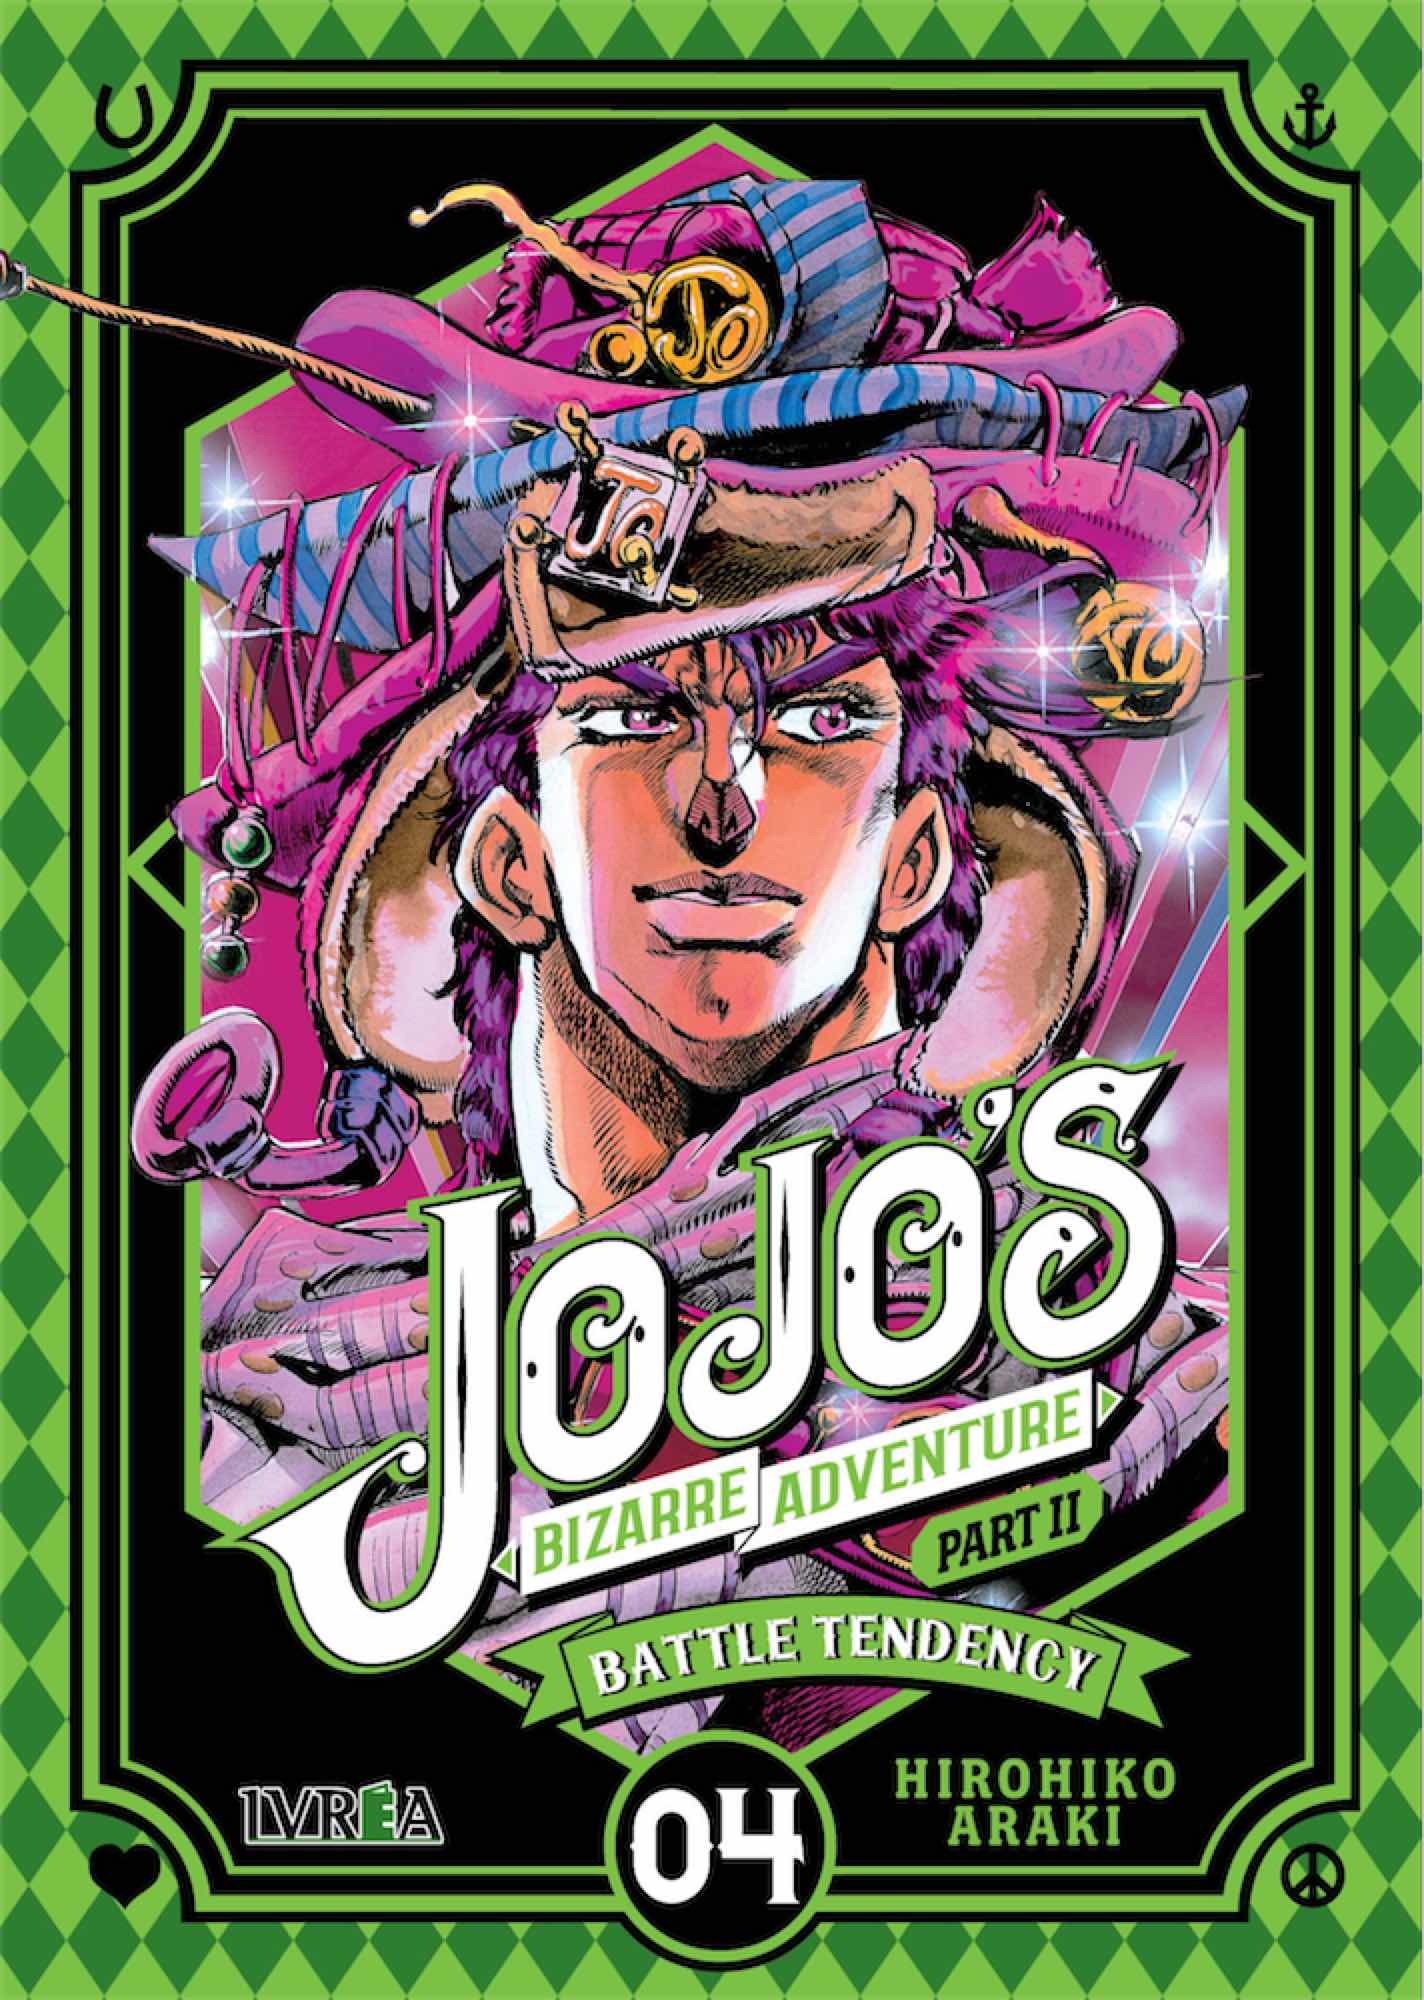 JOJO'S BIZARRE ADVENTURE PARTE 2: BATTLE TENDENCY 04